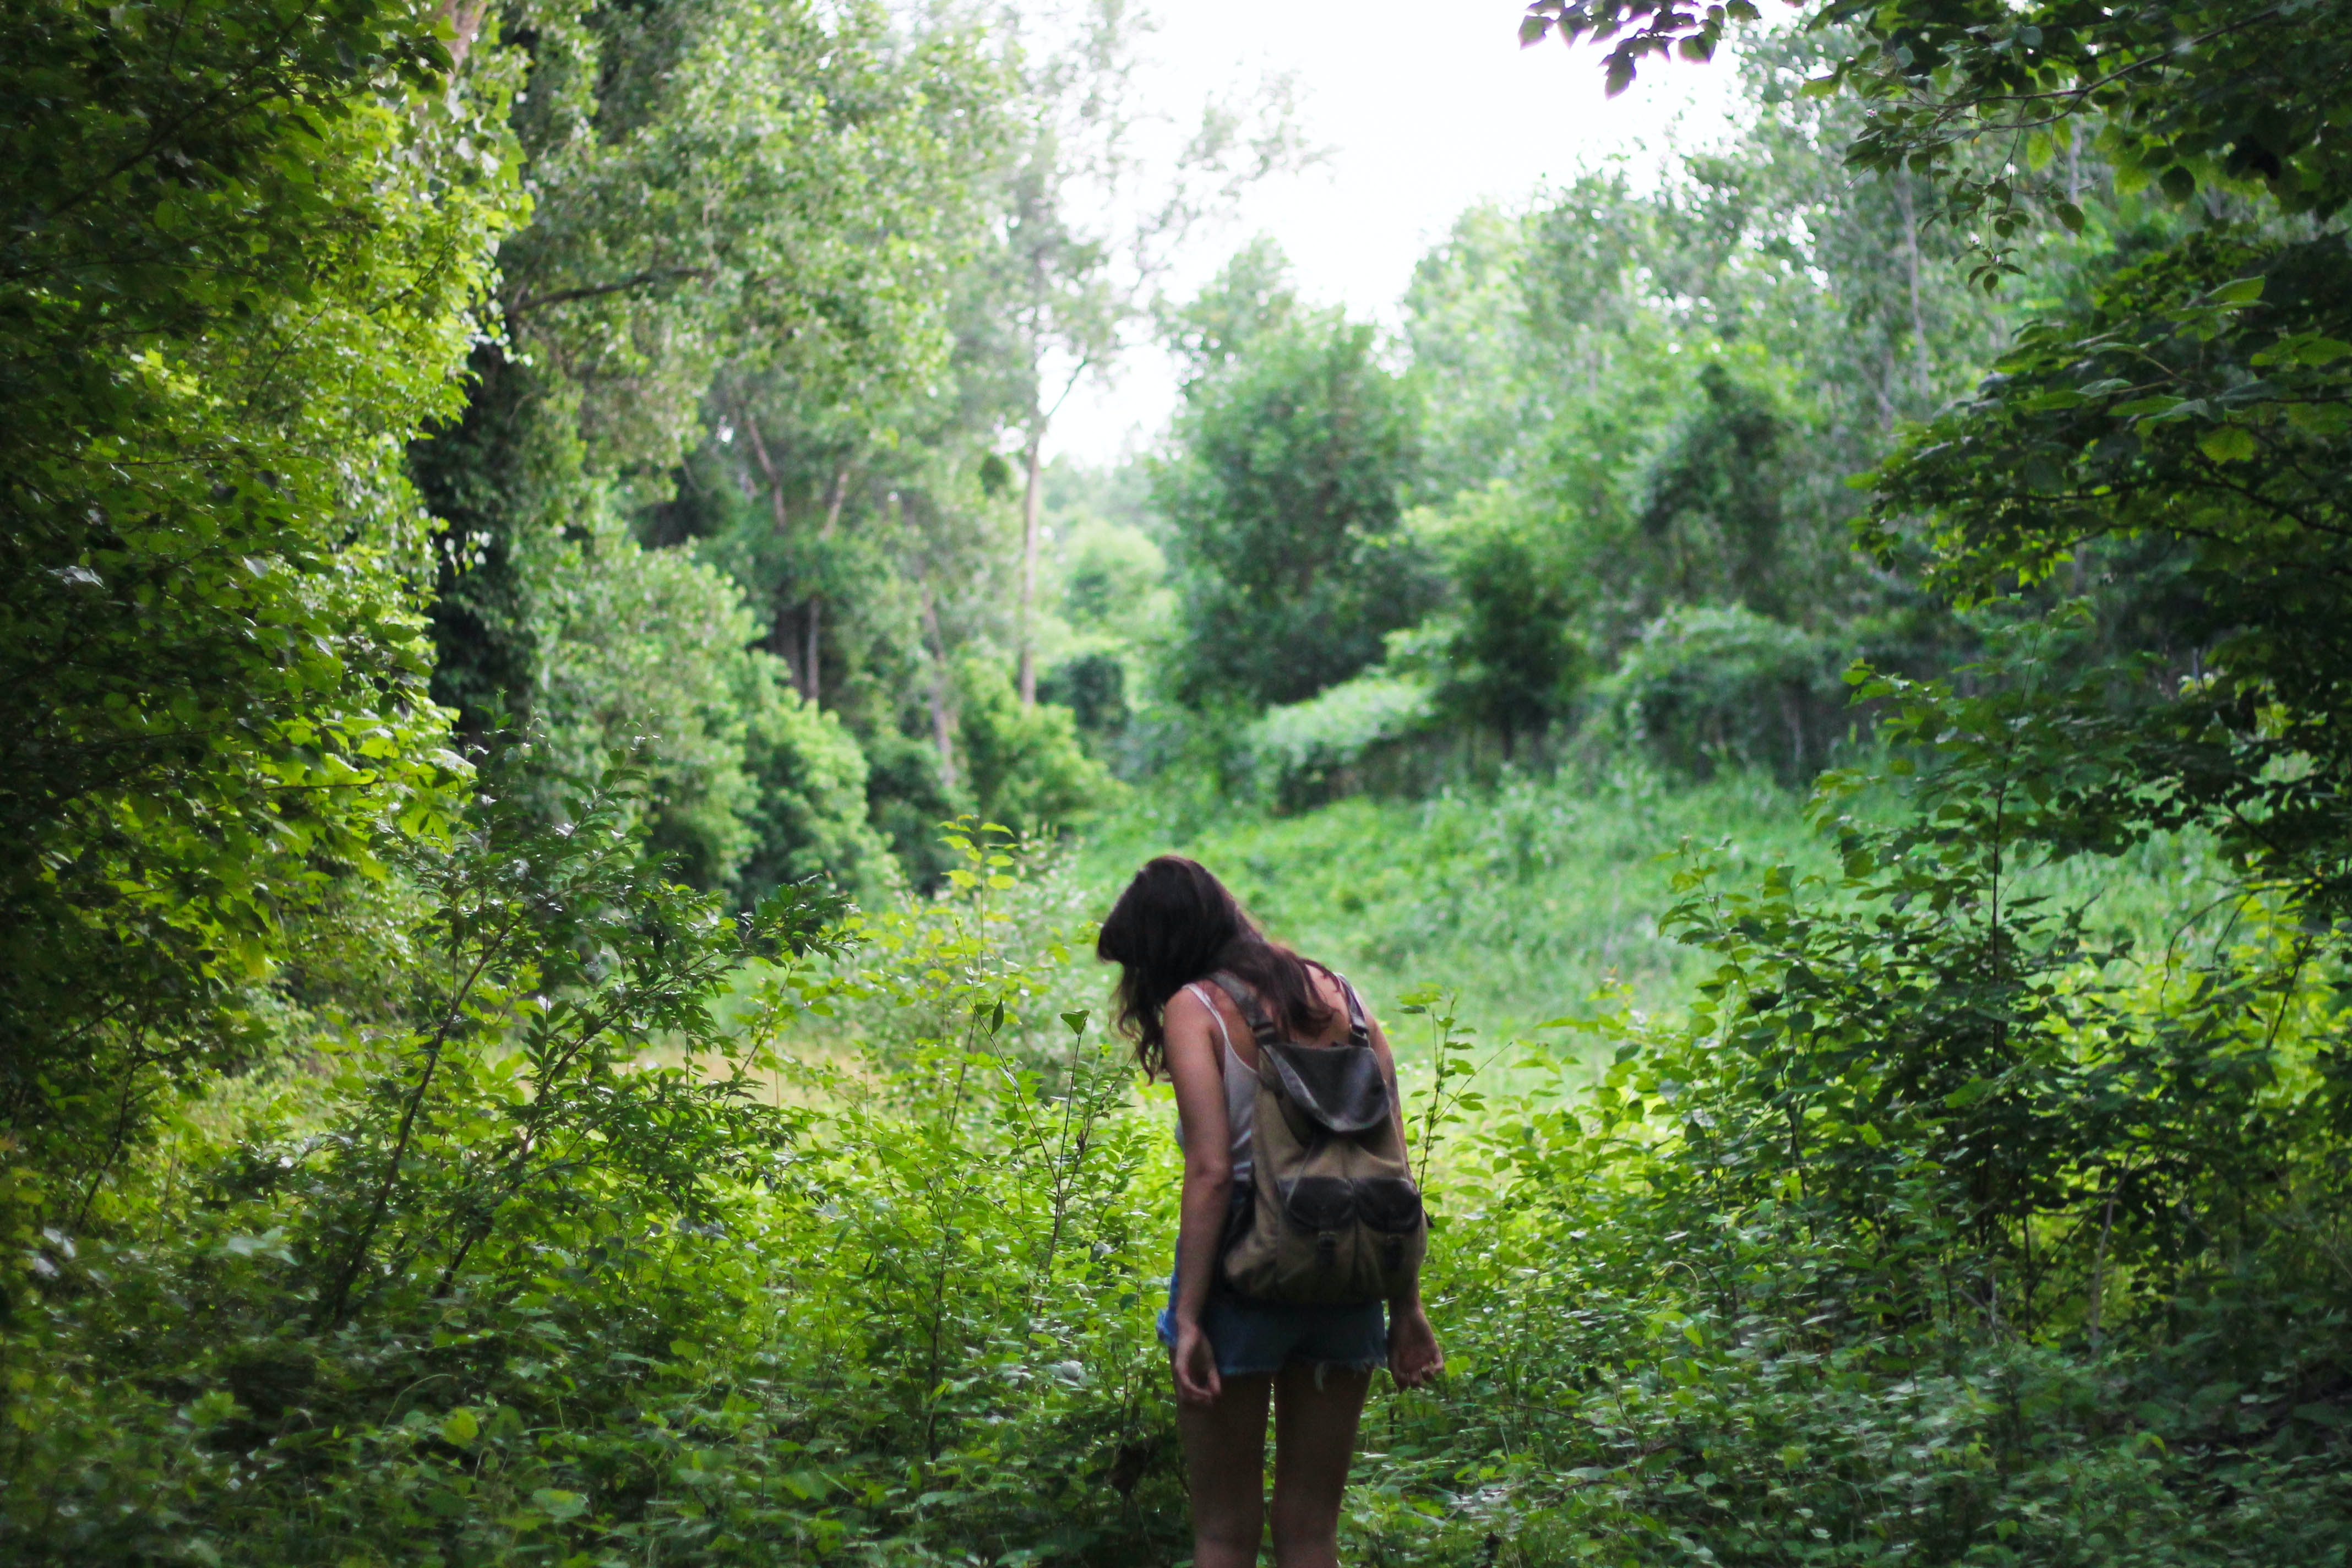 A dark-haired woman with a backpack hiking among green trees and bushes